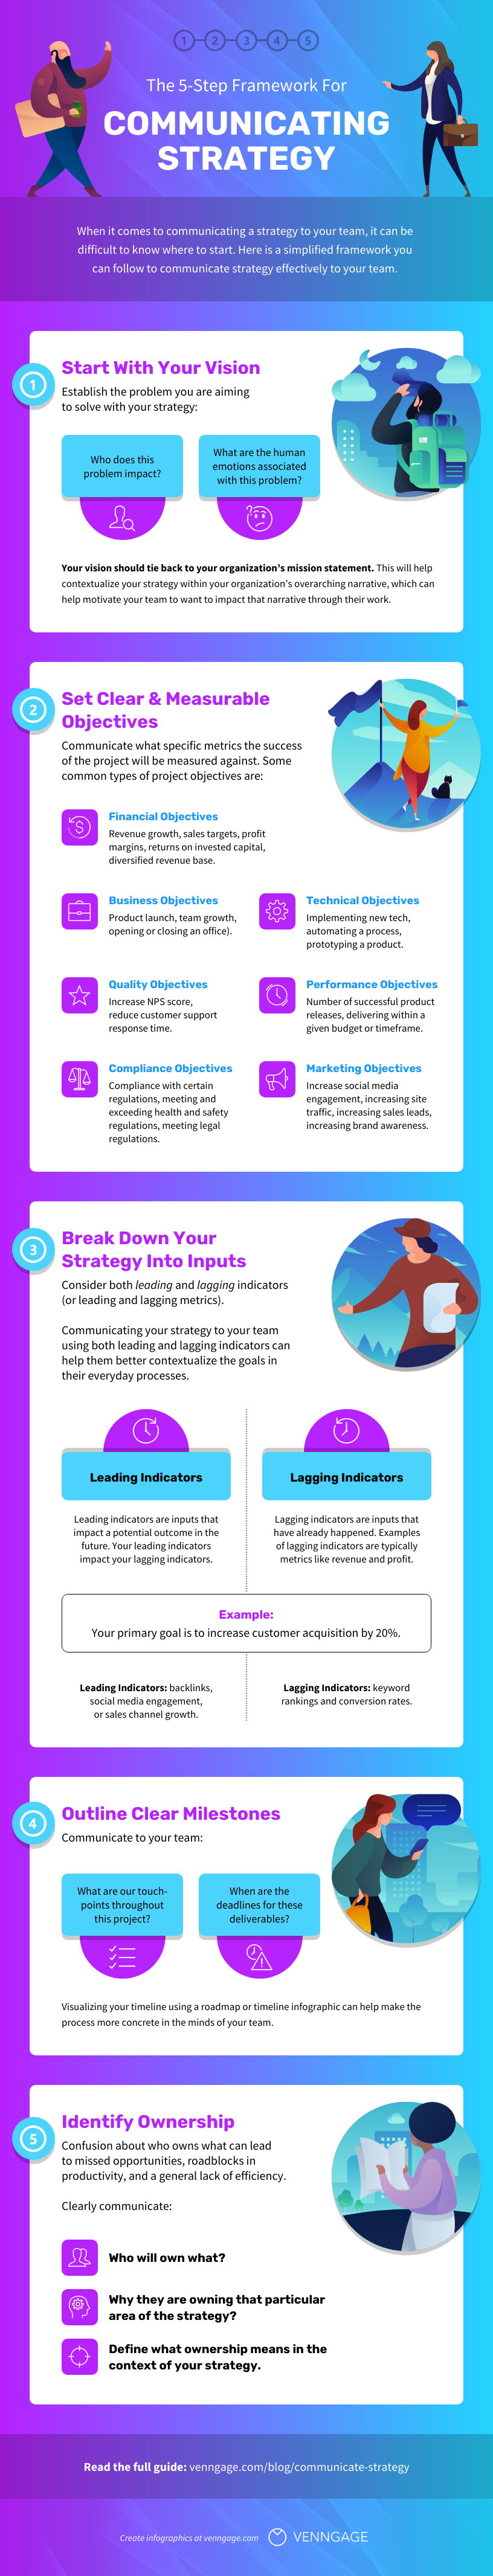 Framework For Communicating Strategy Infographic